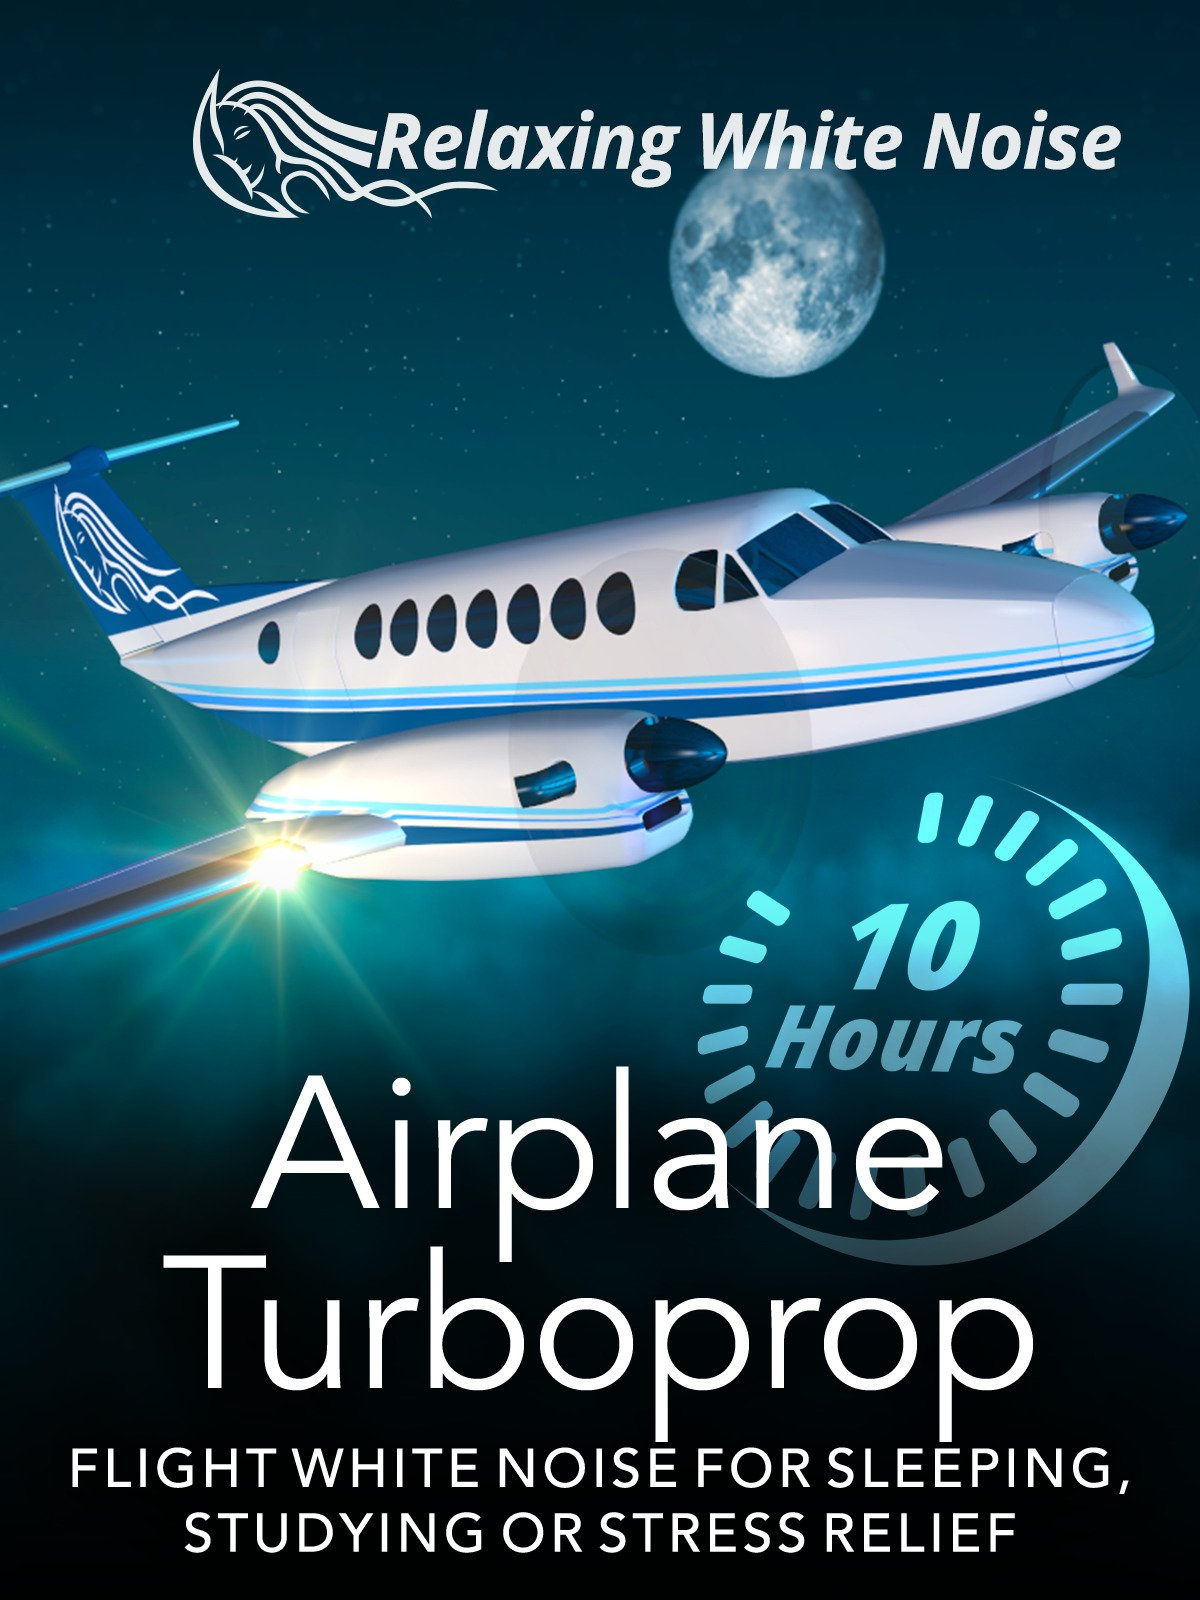 Airplane Turboprop Flight White Noise for Sleeping or Studying